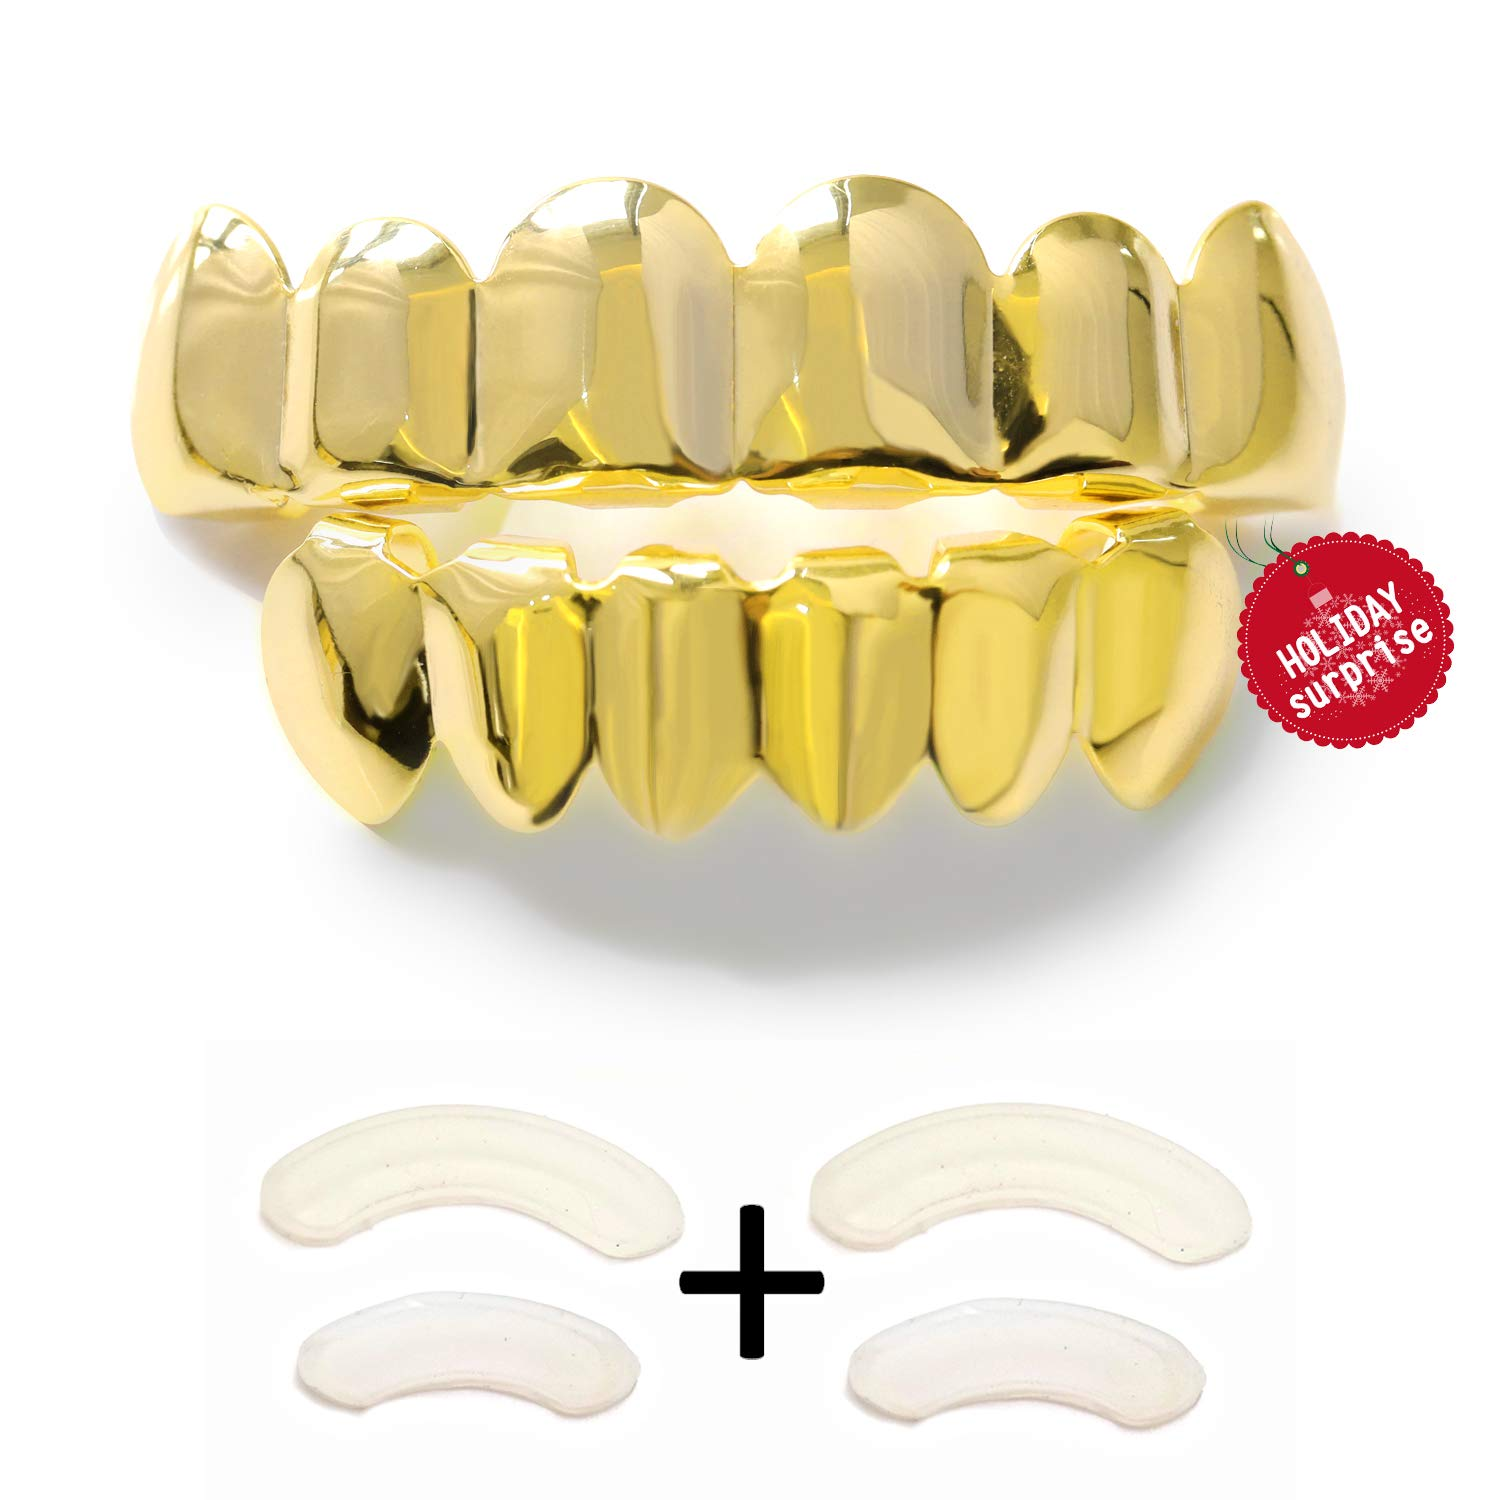 TSANLY Gold Grillz - New Custom Fit 24k Gold Grillz Plated Tooth Grills fit Mouth Caps Top & Bottom Grill Set Grills Kids + Microfiber Cloth